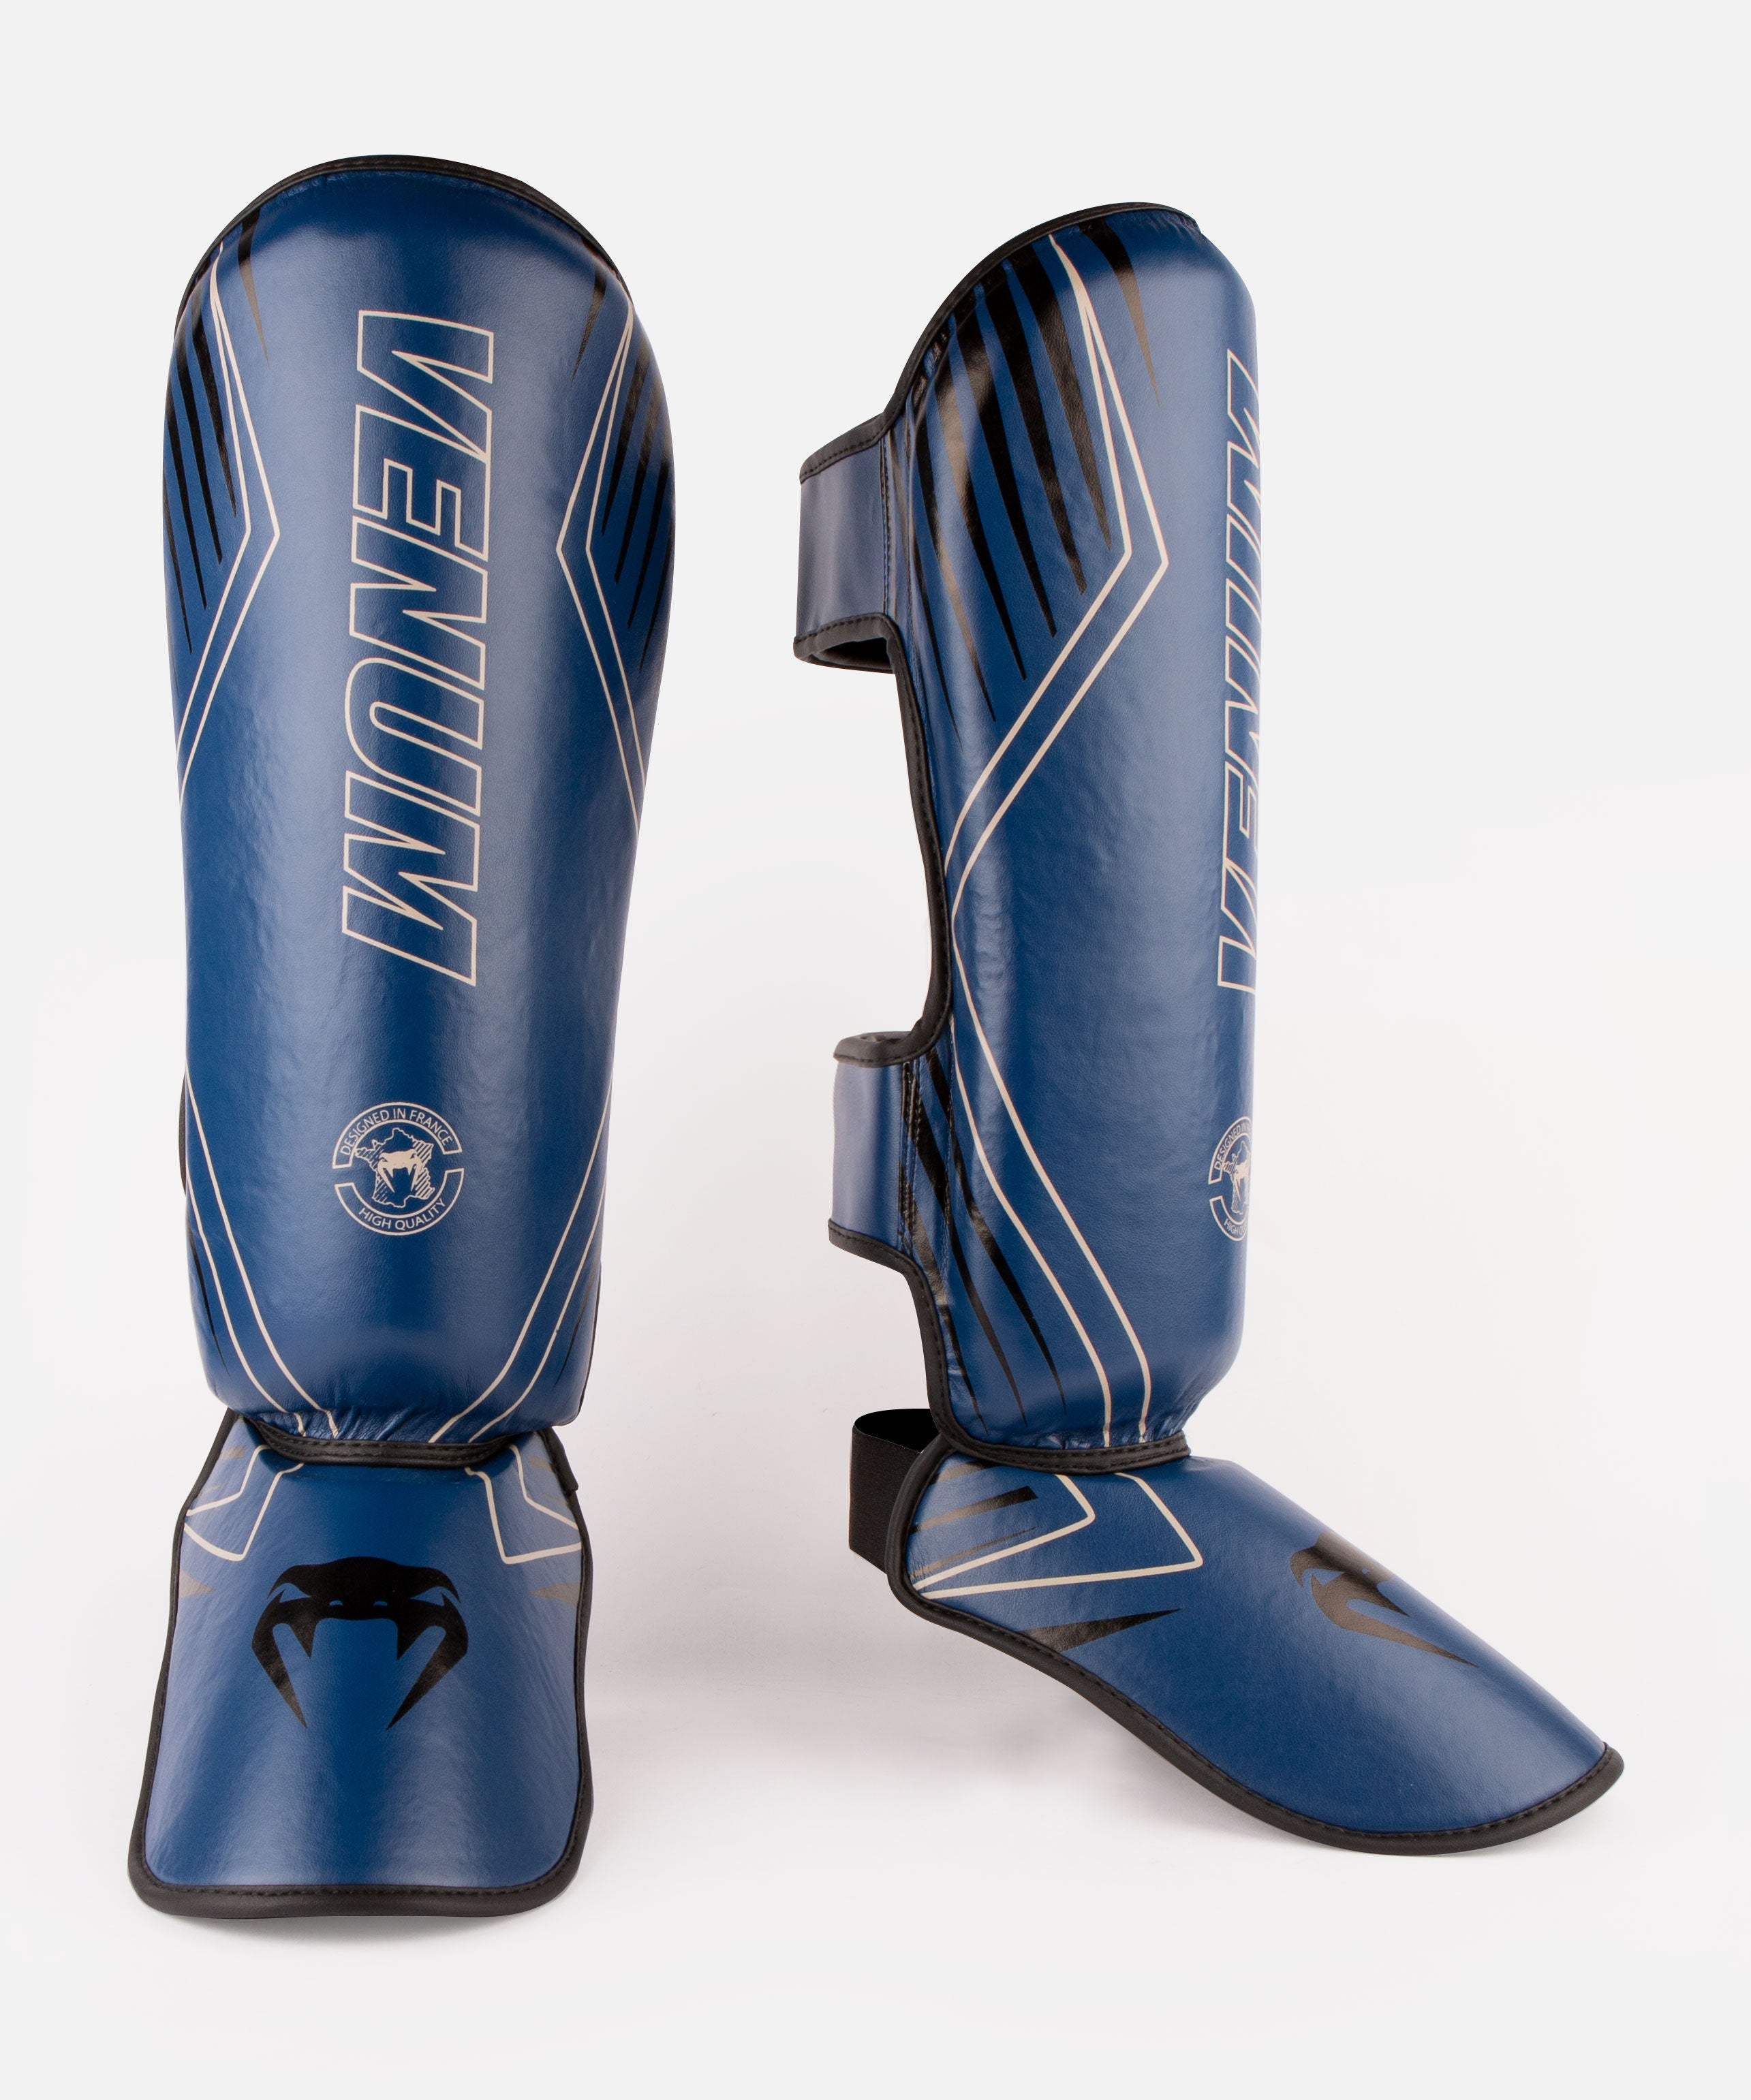 Venum Contender 2.0 Shin Guards - Navy/Sand picture 1